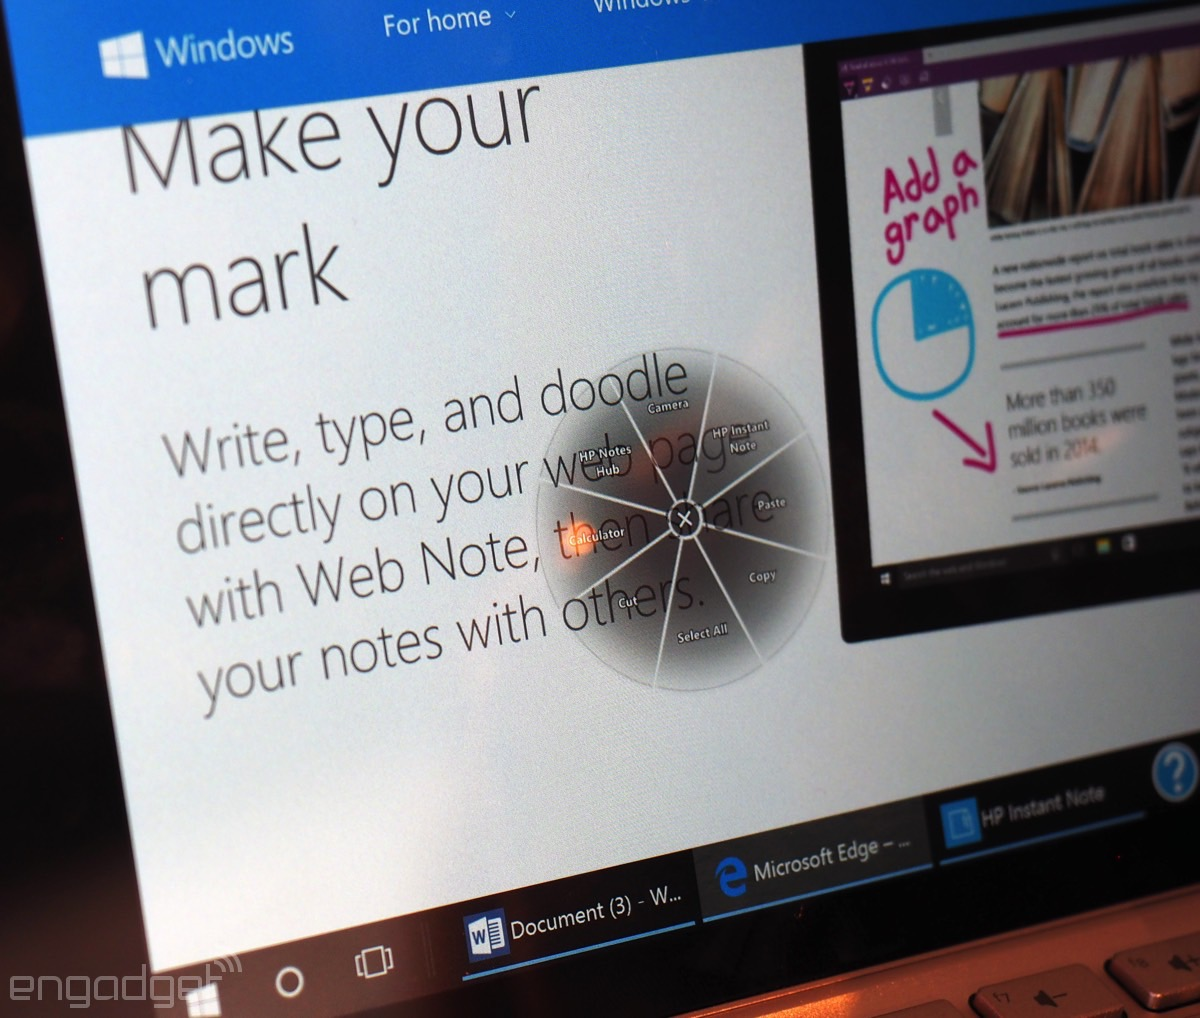 HP wants you to use its new 8-inch Windows tablet to get work done